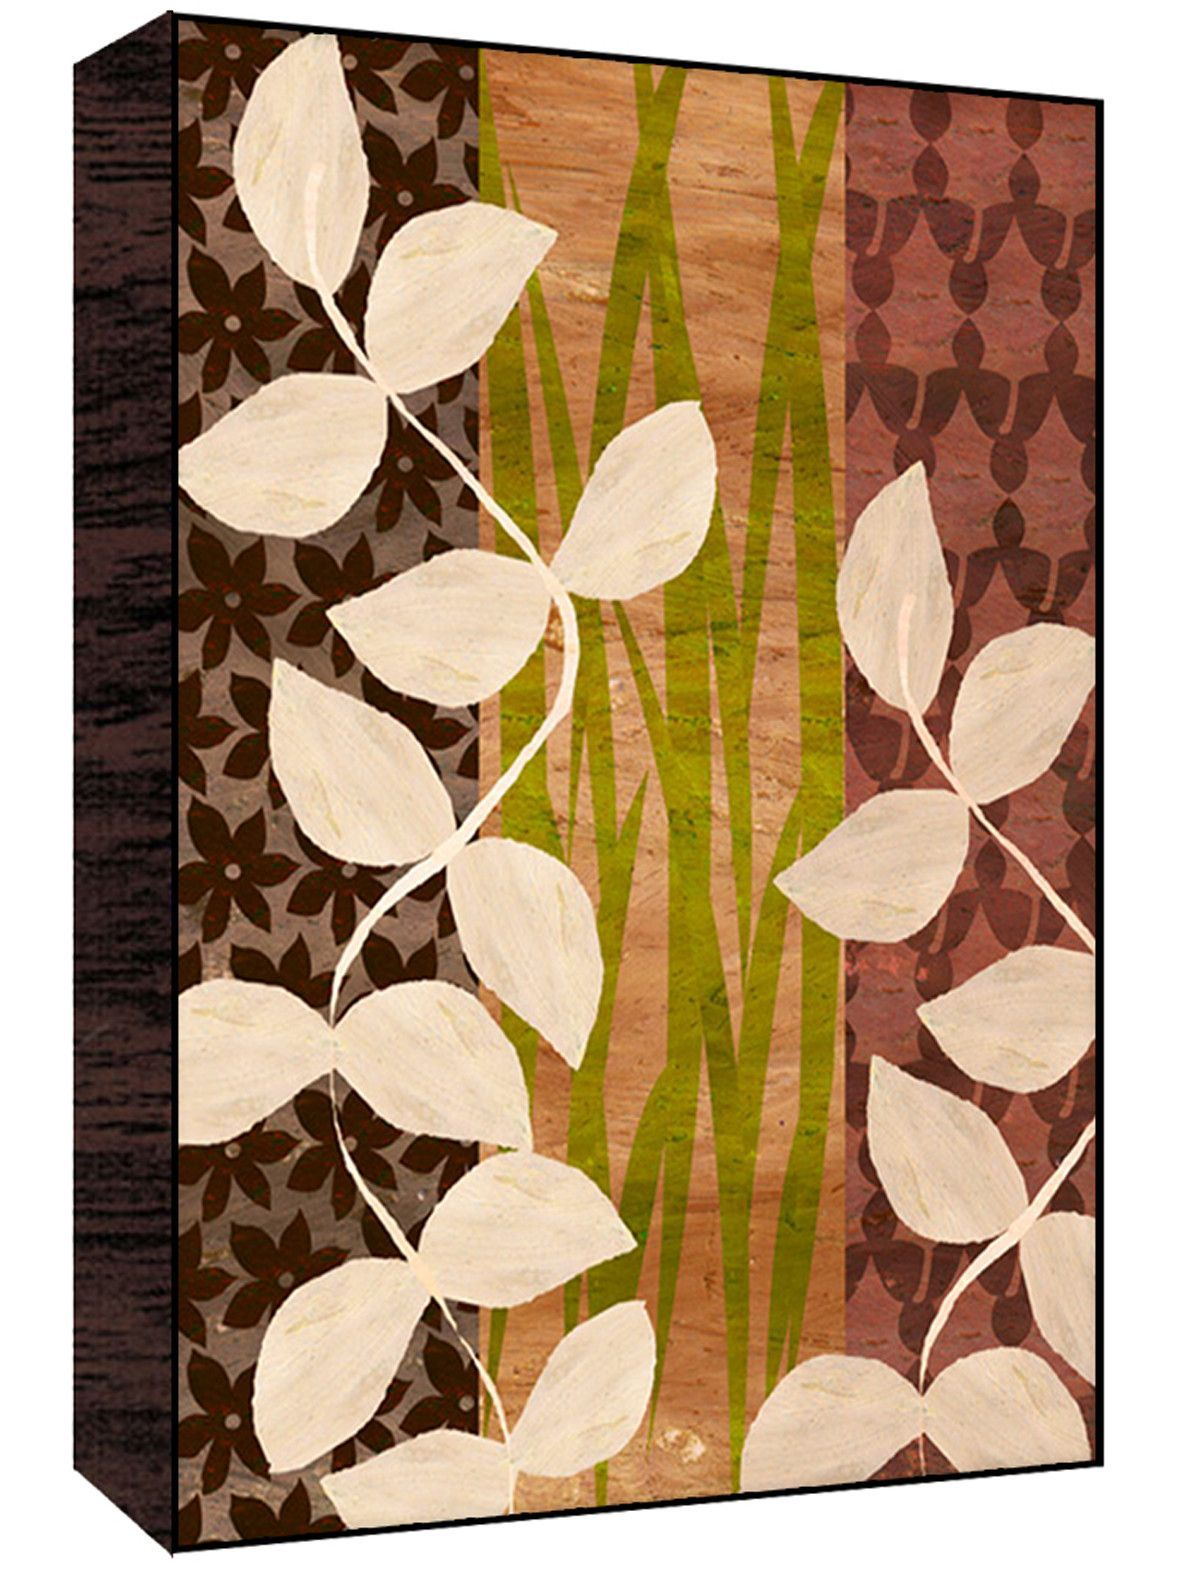 Leaves and Branches I Wall Art | Products | Pinterest | Leaf art ...